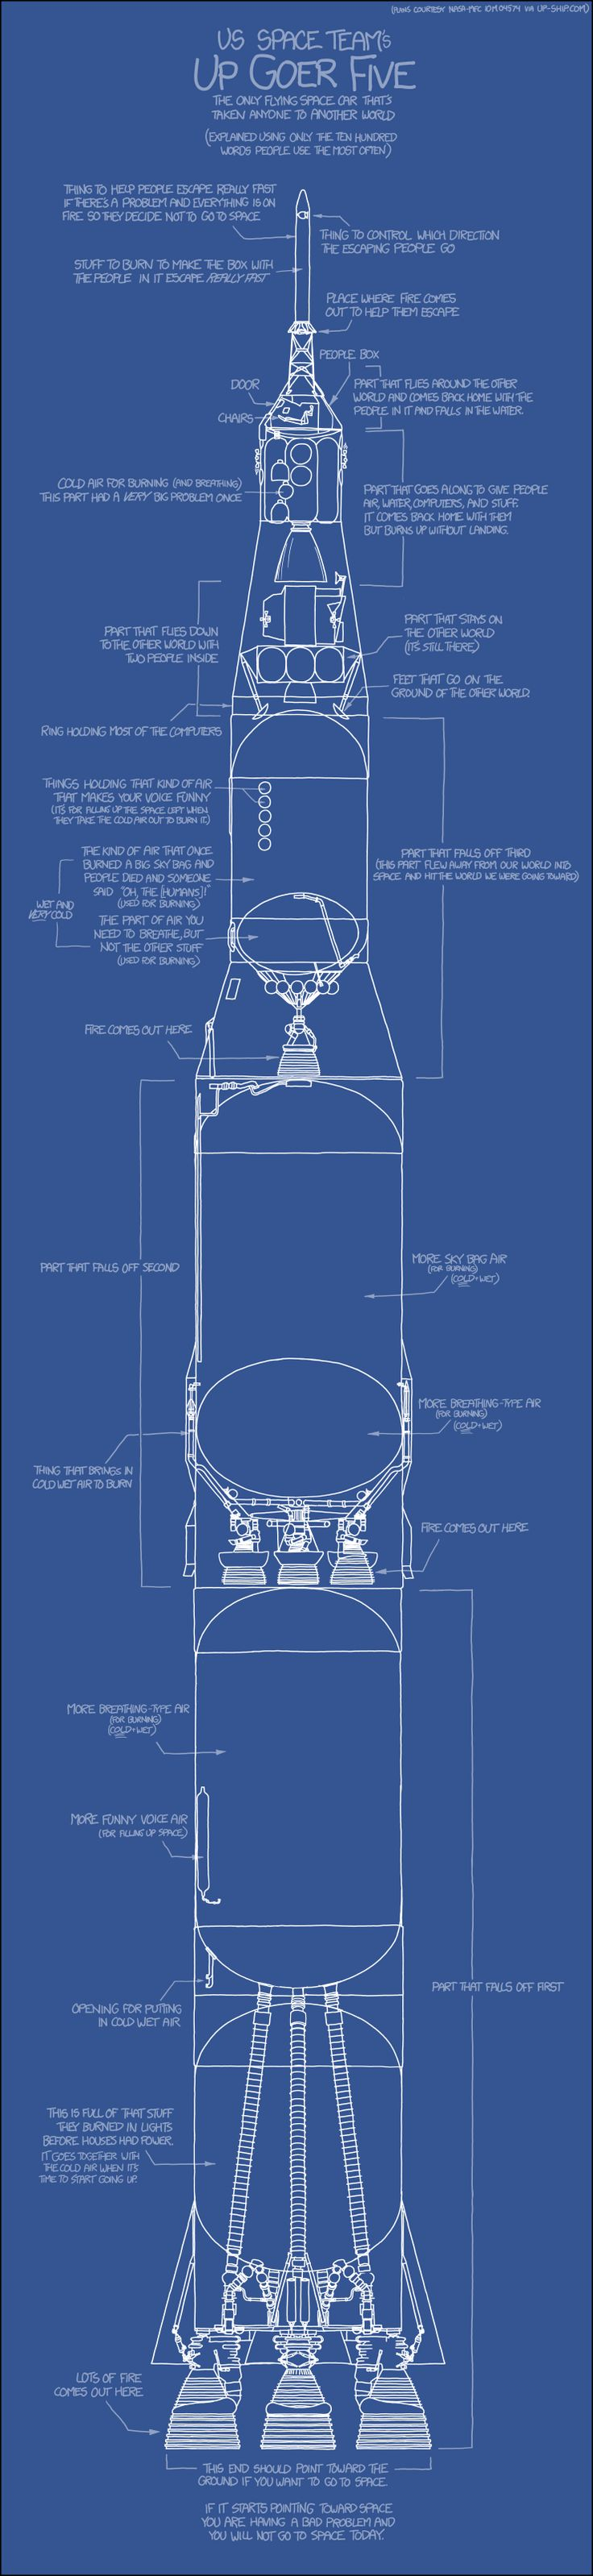 Up Goer Five (Saturn V) by XKCD in basic english